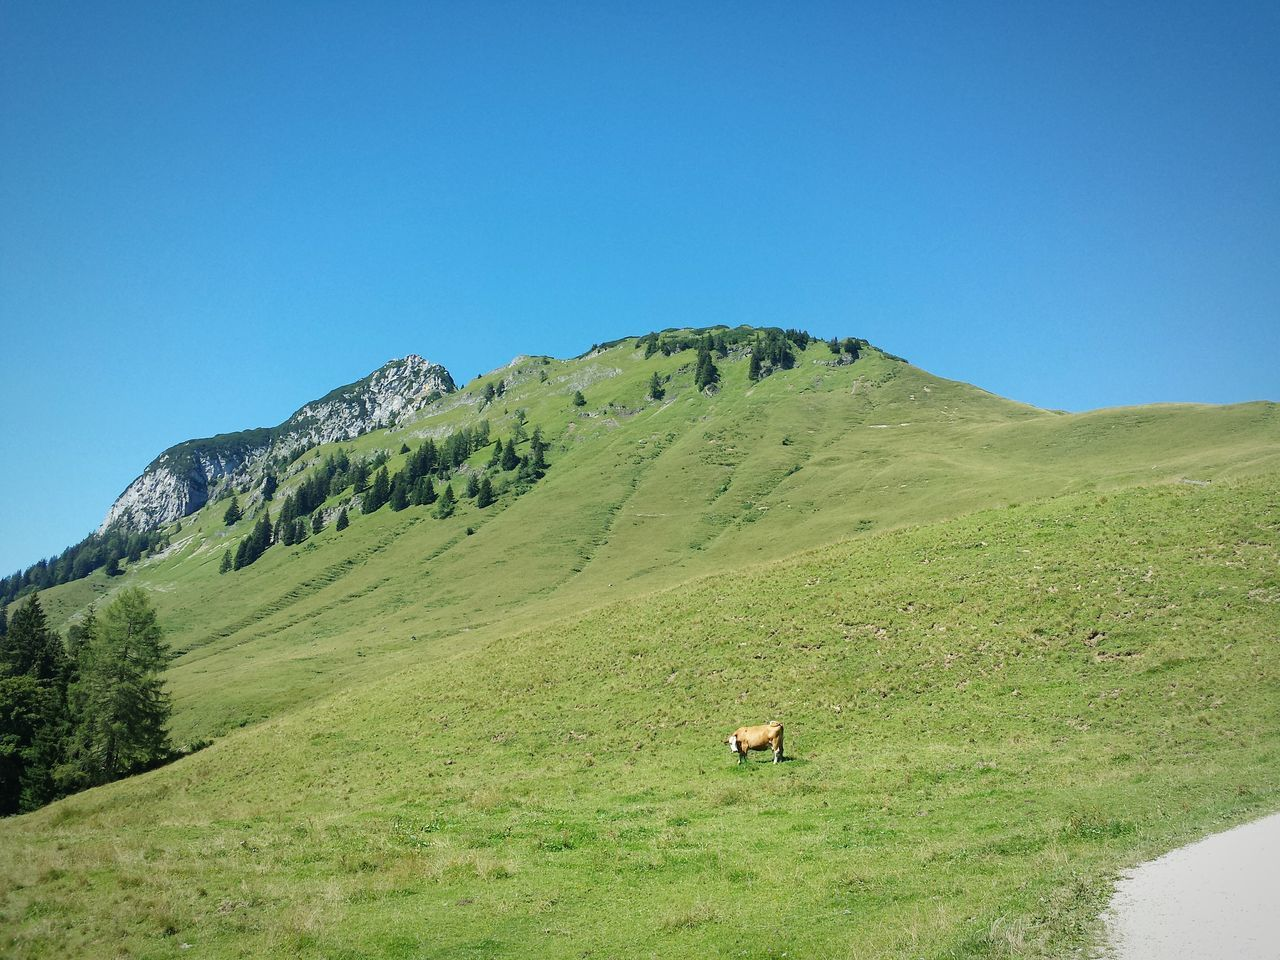 Nature Landscape Green Color Mountain Outdoors Day Vacations Scenics Travel Destinations No People Grass Sky Beauty In Nature Tree Clear Sky Hiking Animals In The Wild Cow Green Blue Sky